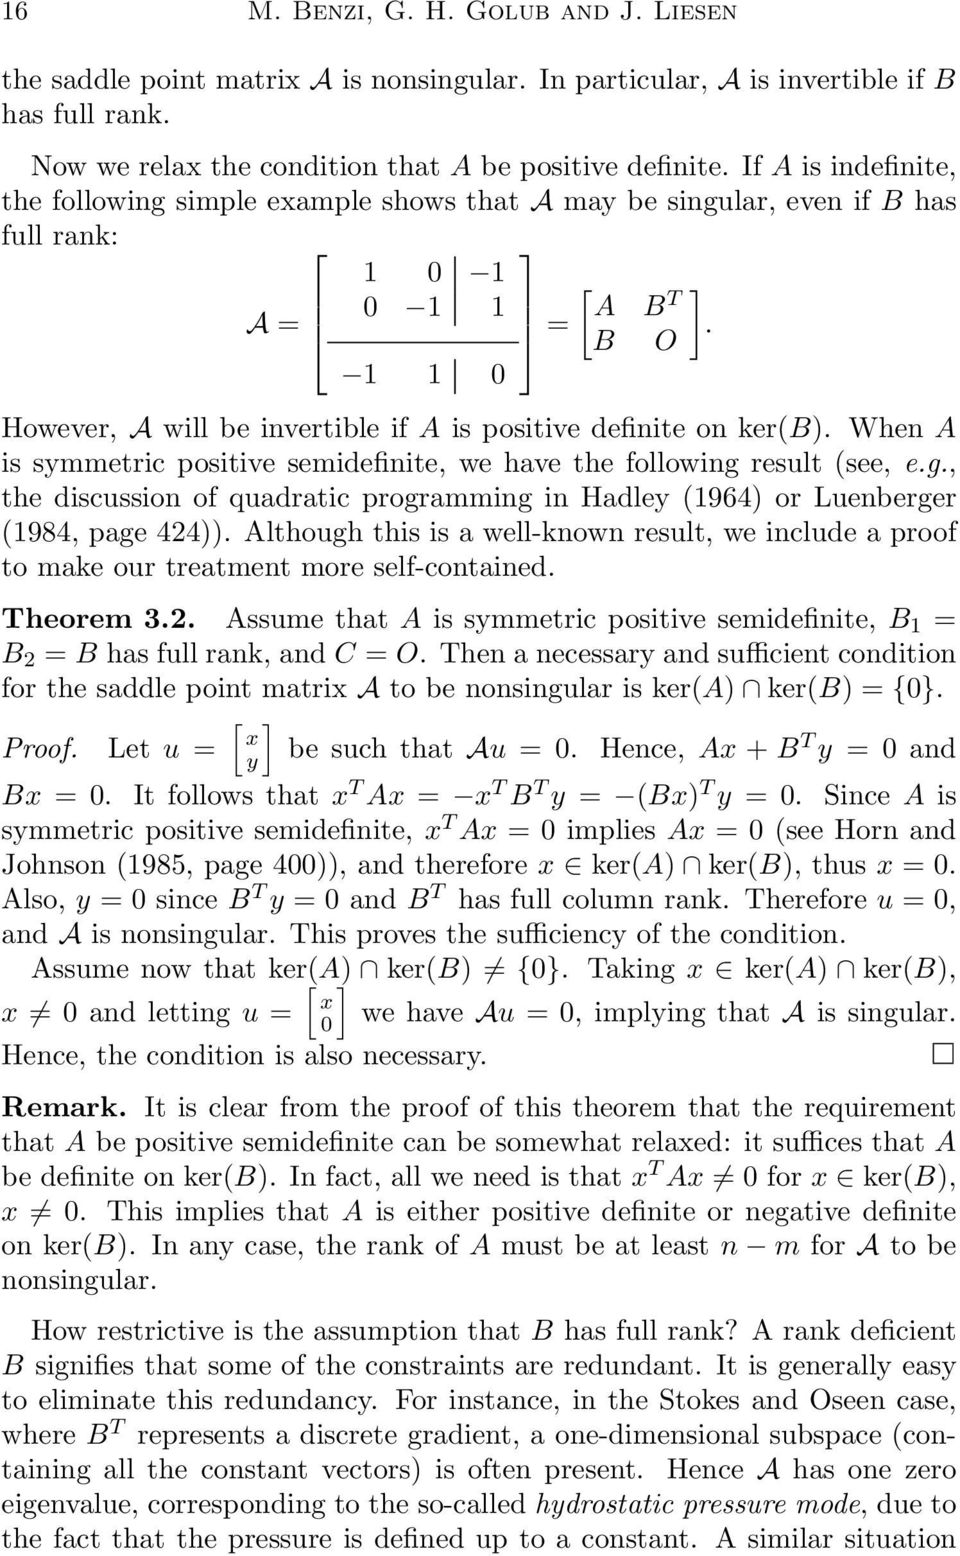 When A is symmetric positive semidefinite, we have the following result (see, e.g., the discussion of quadratic programming in Hadley (1964) or Luenberger (1984, page 424)).